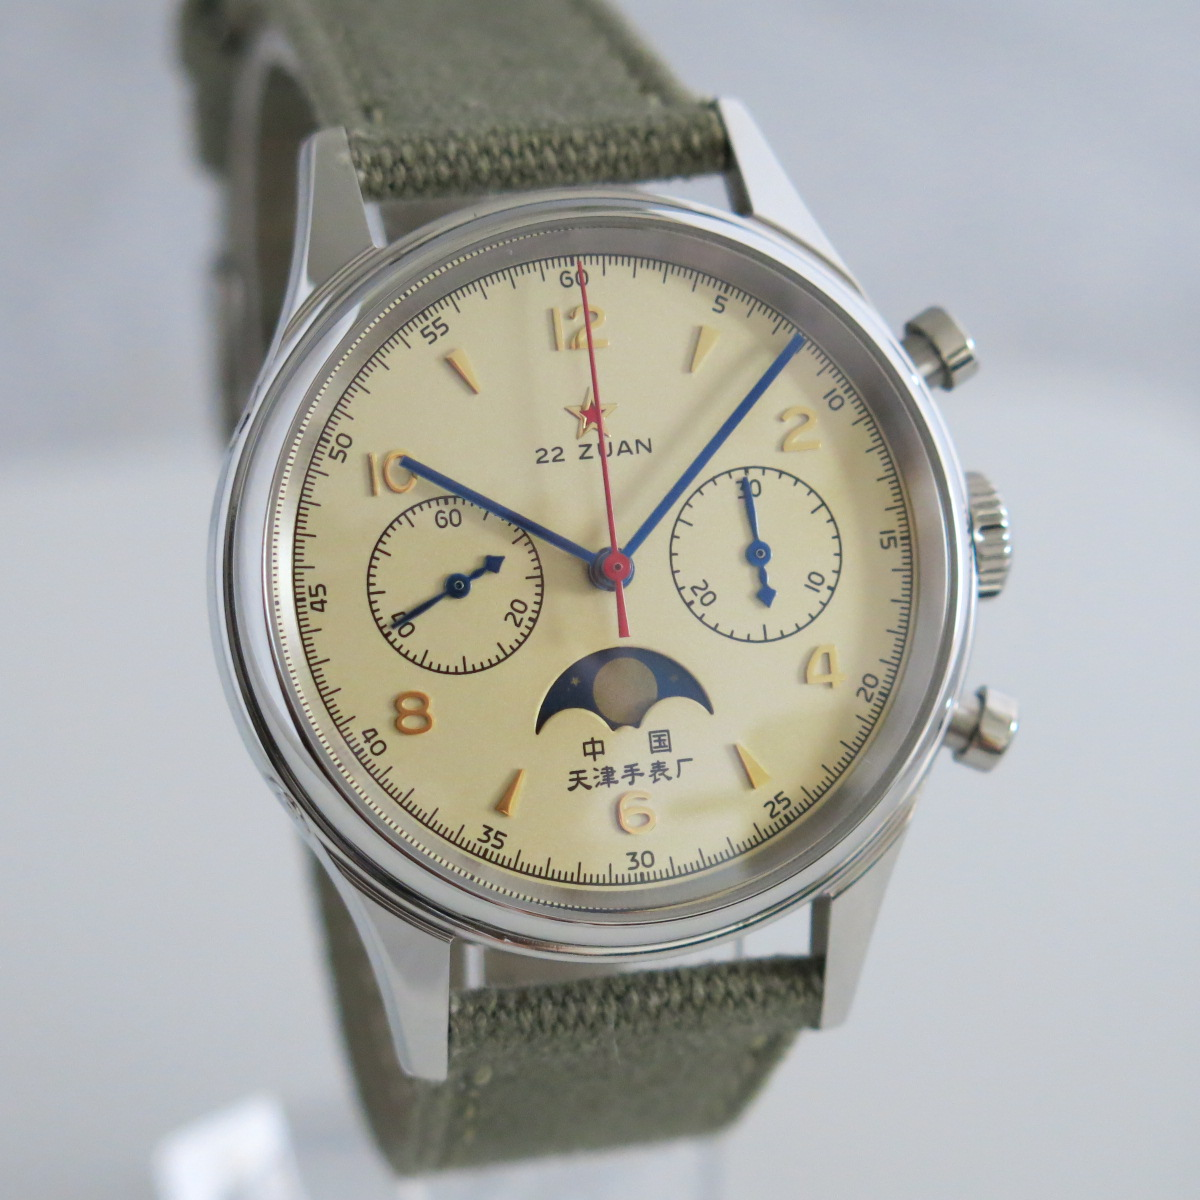 1963 reissue aviation chronograph with moonphase